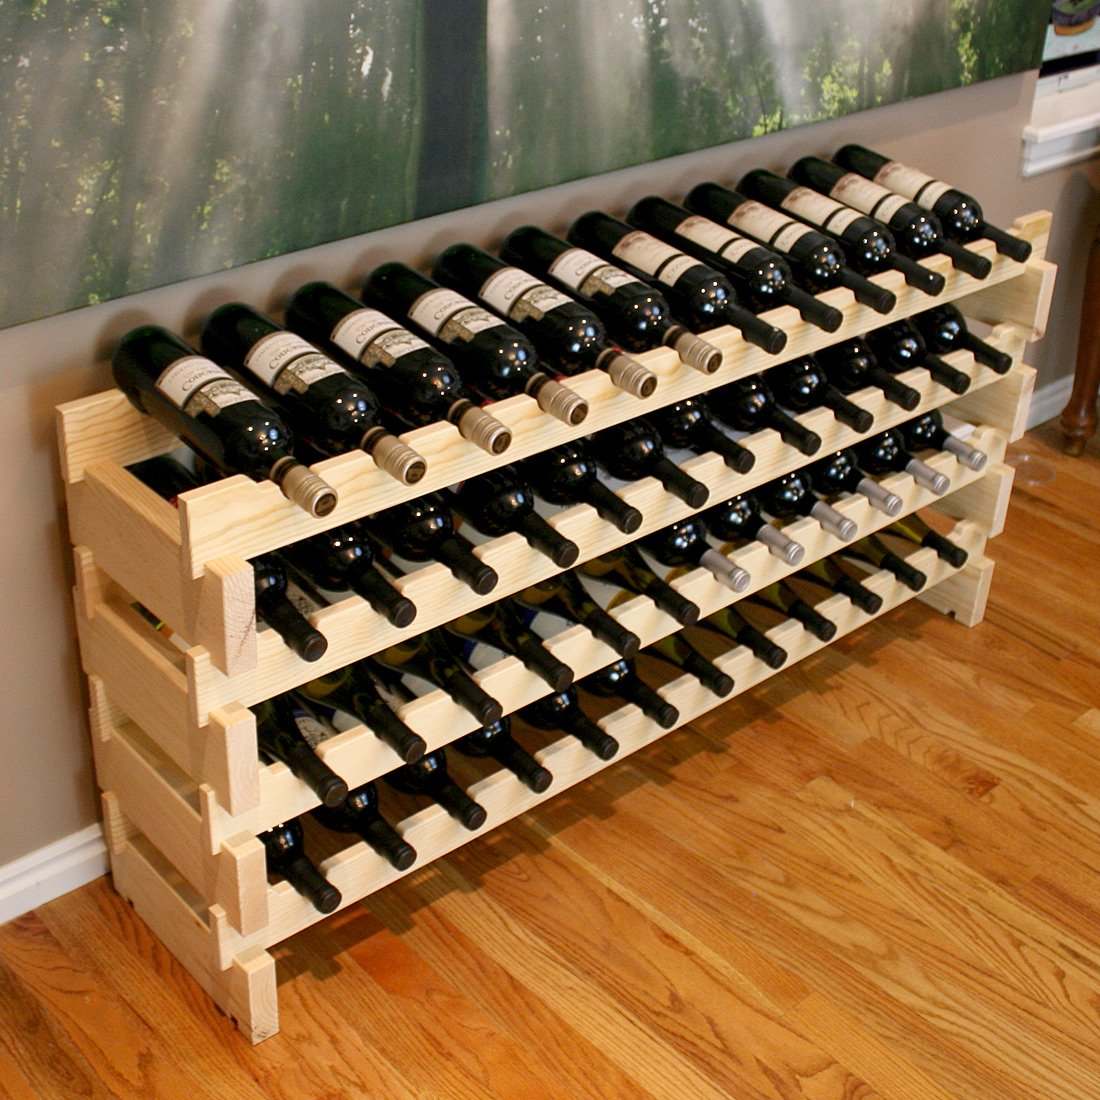 Creekside 48 Bottle Long Scalloped Wine Rack (Pine) by Creekside - Easily stack multiple units - hardware and assembly free. Hand-sanded to perfection!, Pine